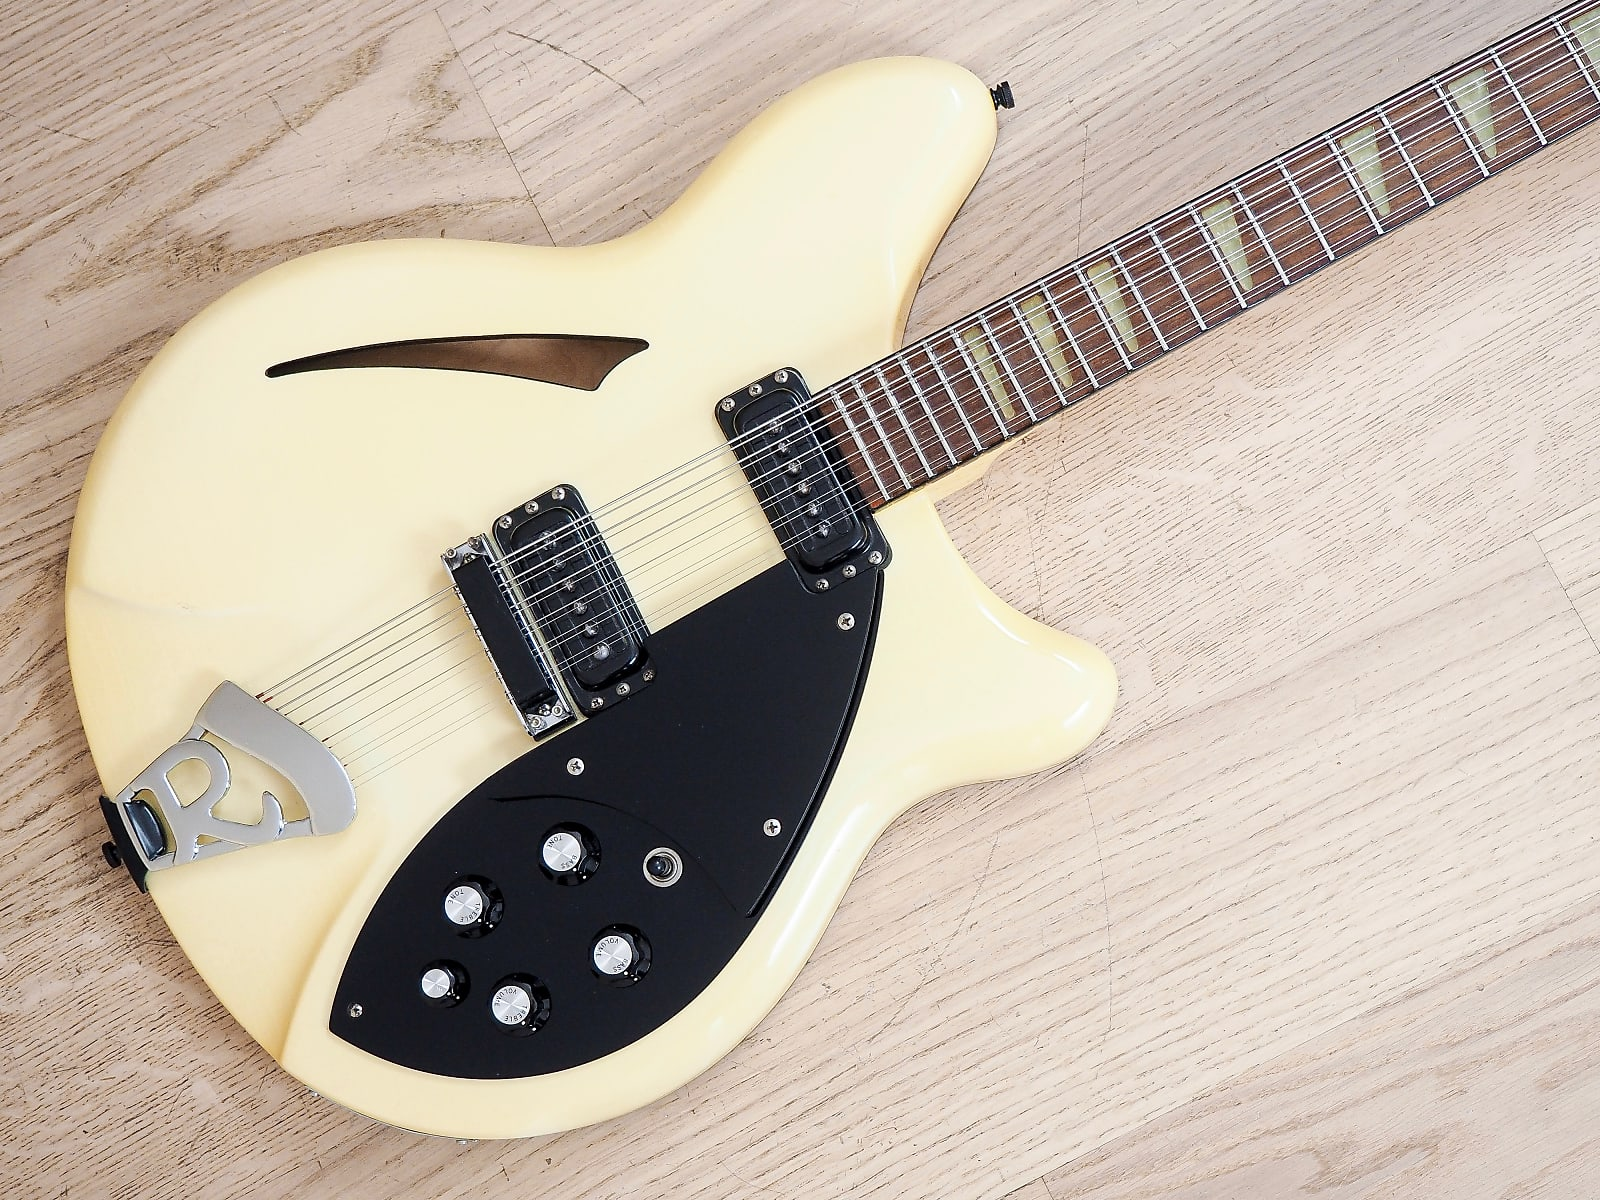 hight resolution of 1991 rickenbacker 360 12 electric guitar 12 string white tuxedo stock clean